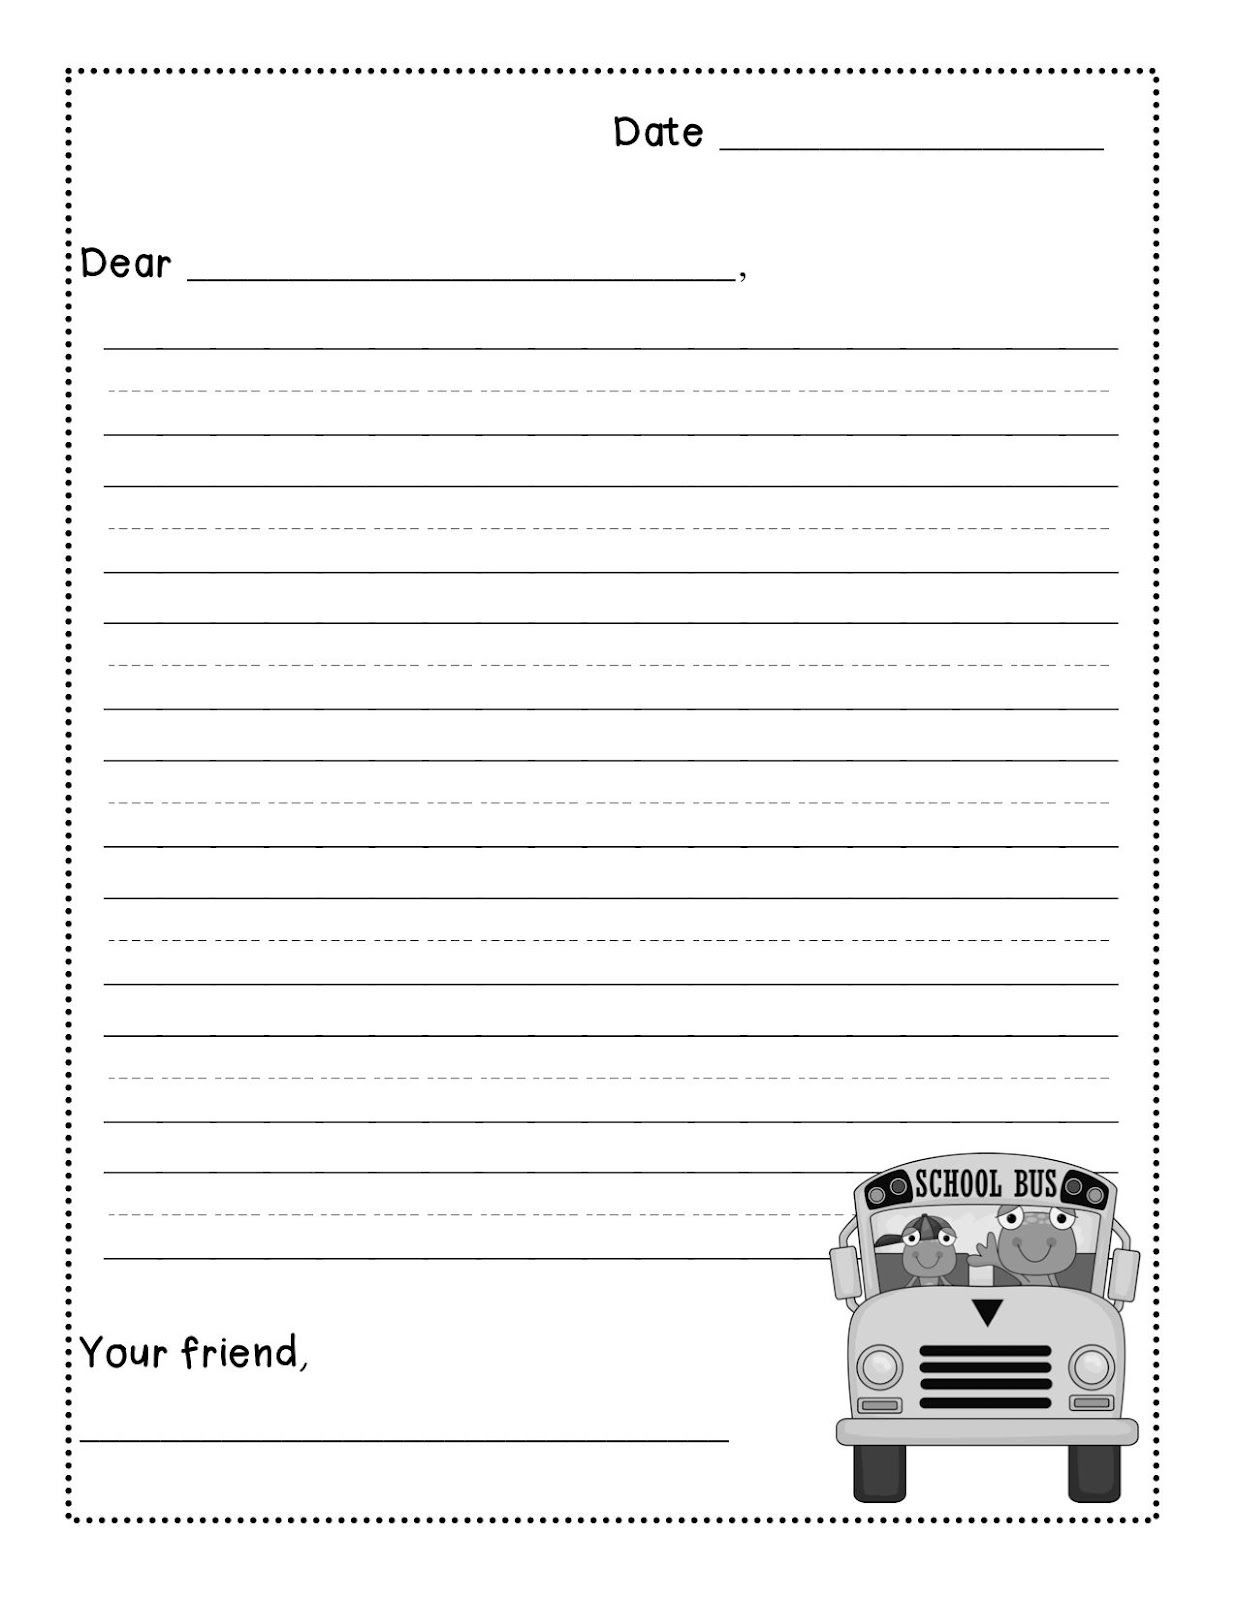 000 Beautiful Free Letter Writing Template 2nd Grade Sample Full